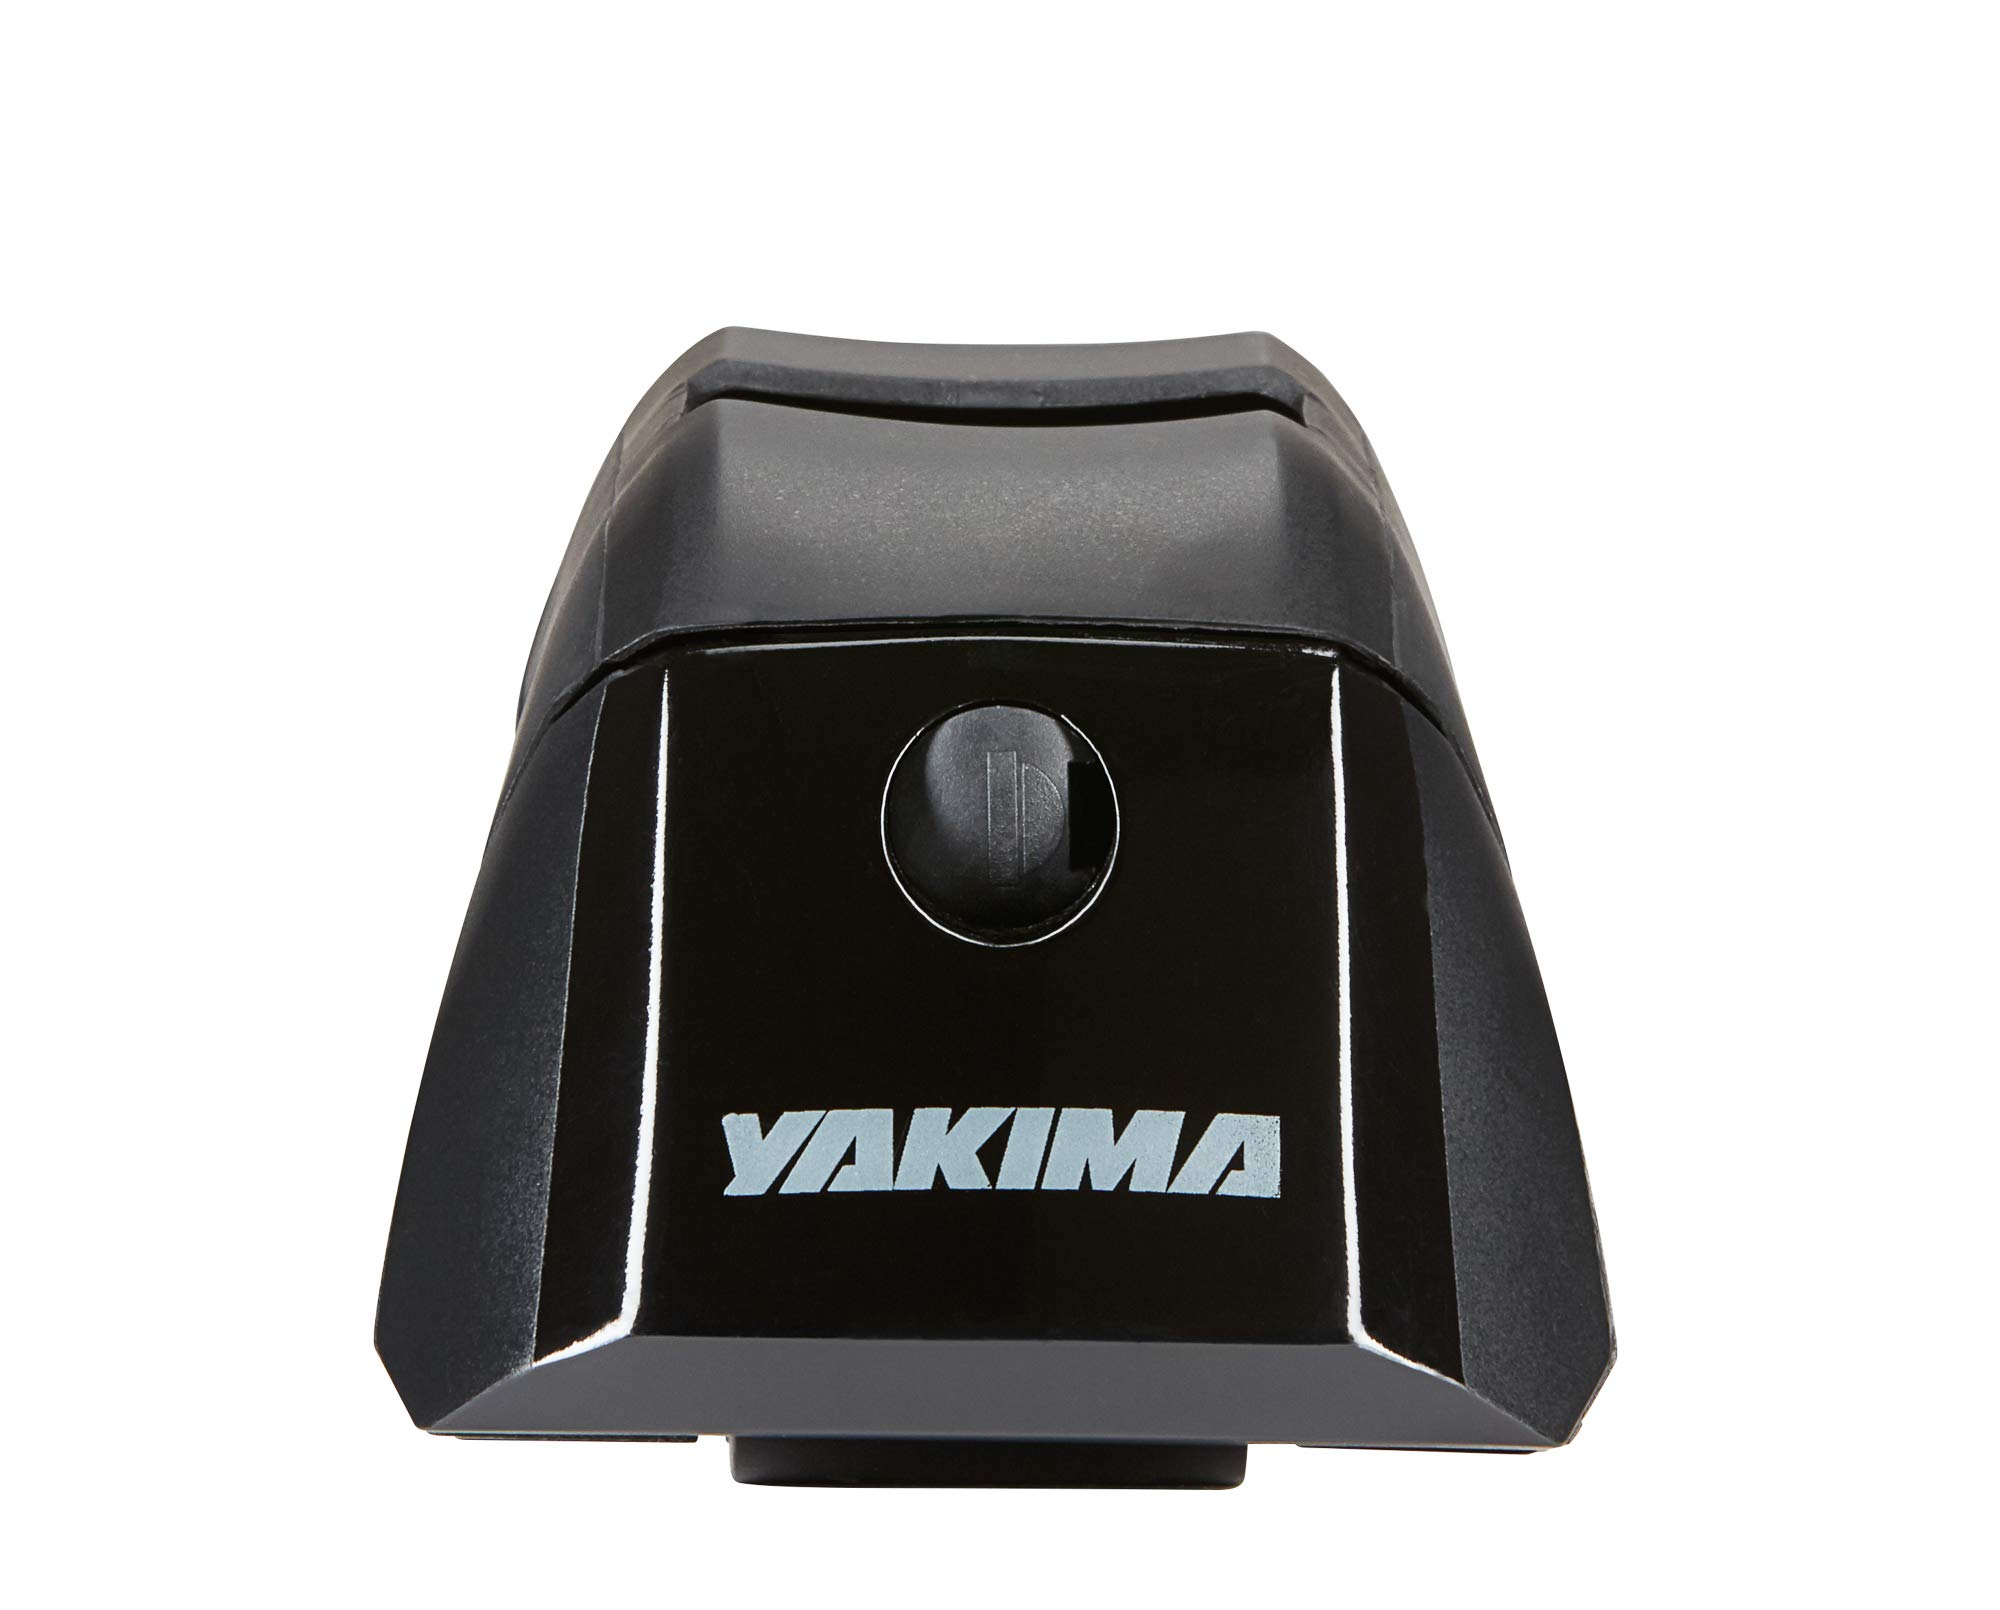 yakima - Timberline Tower, Expanded Carrying Capacity for Factory Racks (4 Pack) by yakima